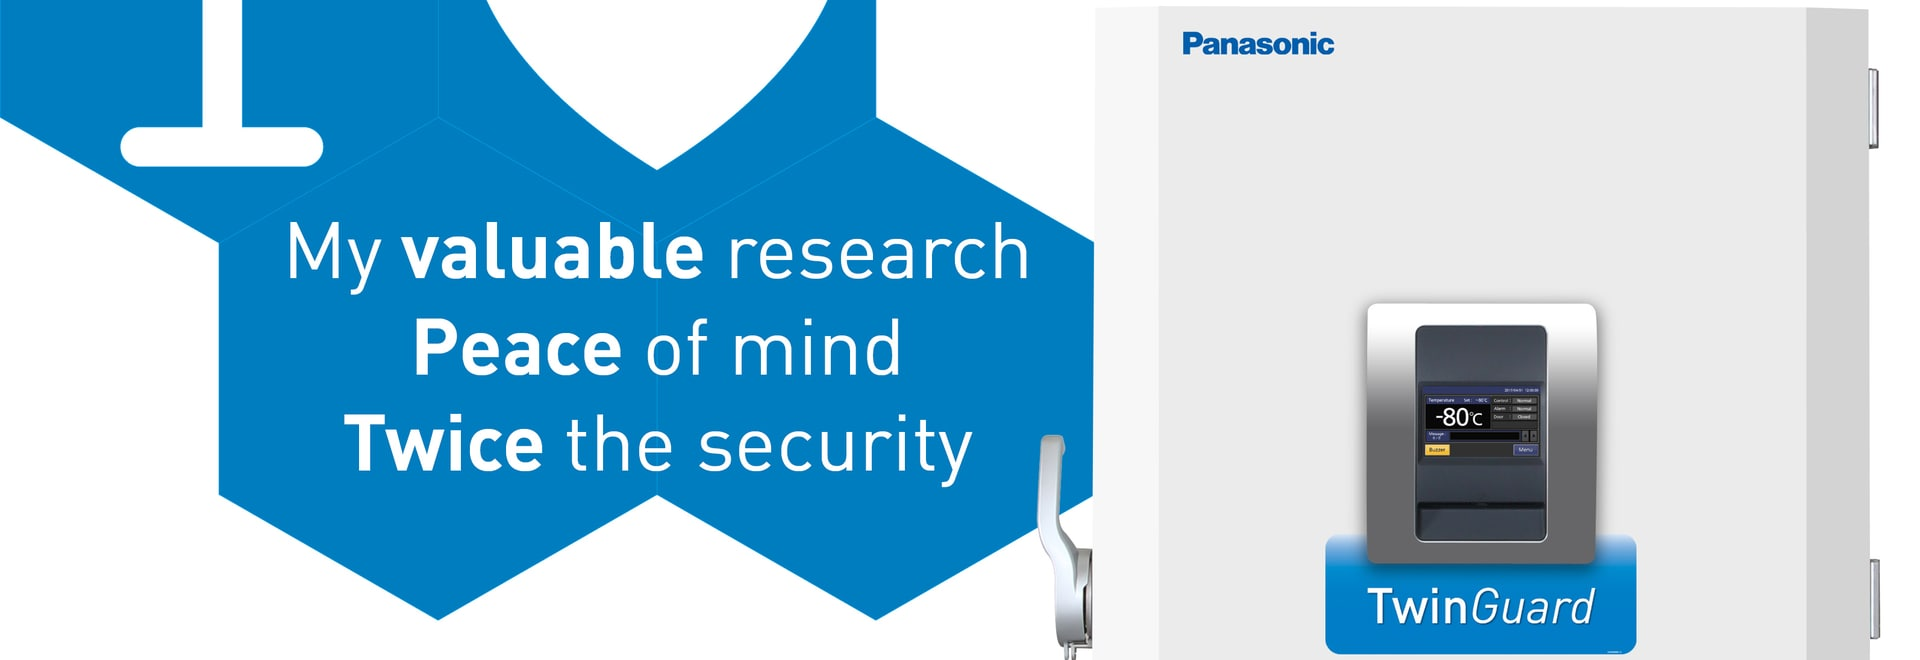 I Love My valuable research, Peace of mind, Twice the security